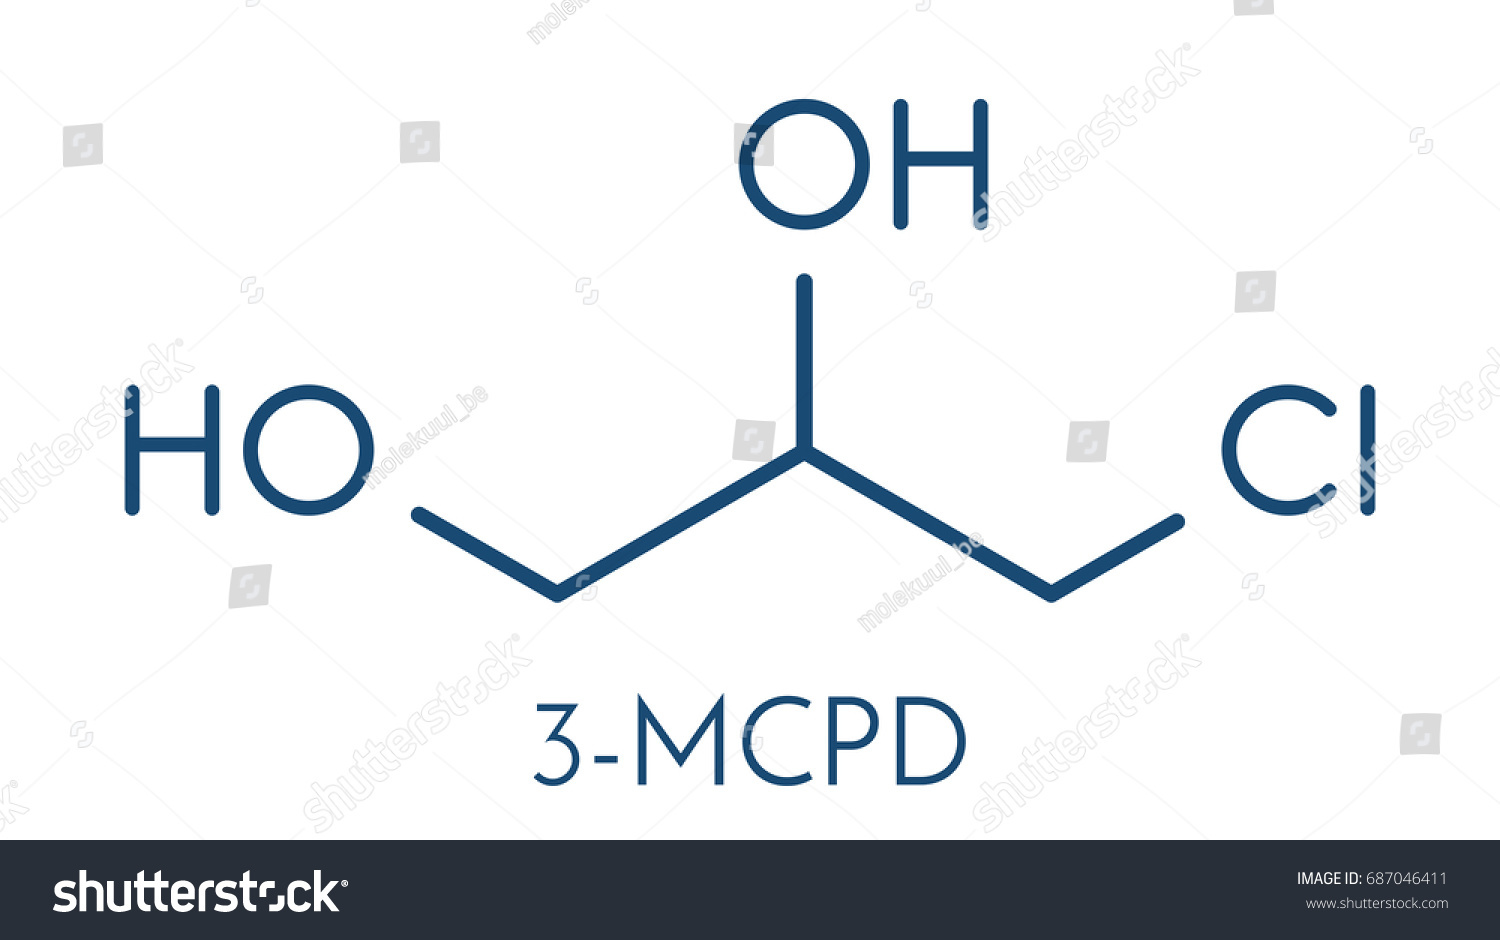 3 Mcpd Carcinogenic Food Byproduct Molecule Produced Stock Vector